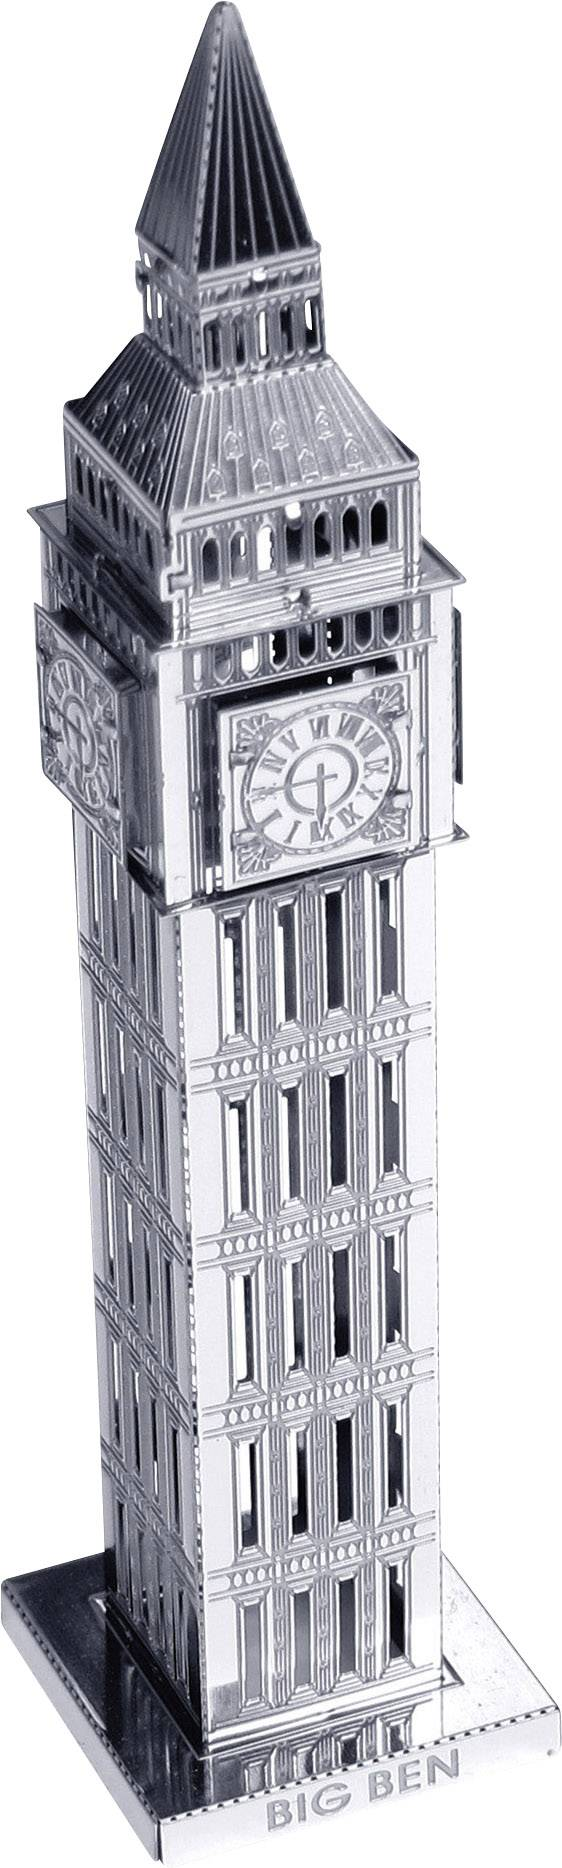 Stavebnice Metal Earth Big Ben Tower